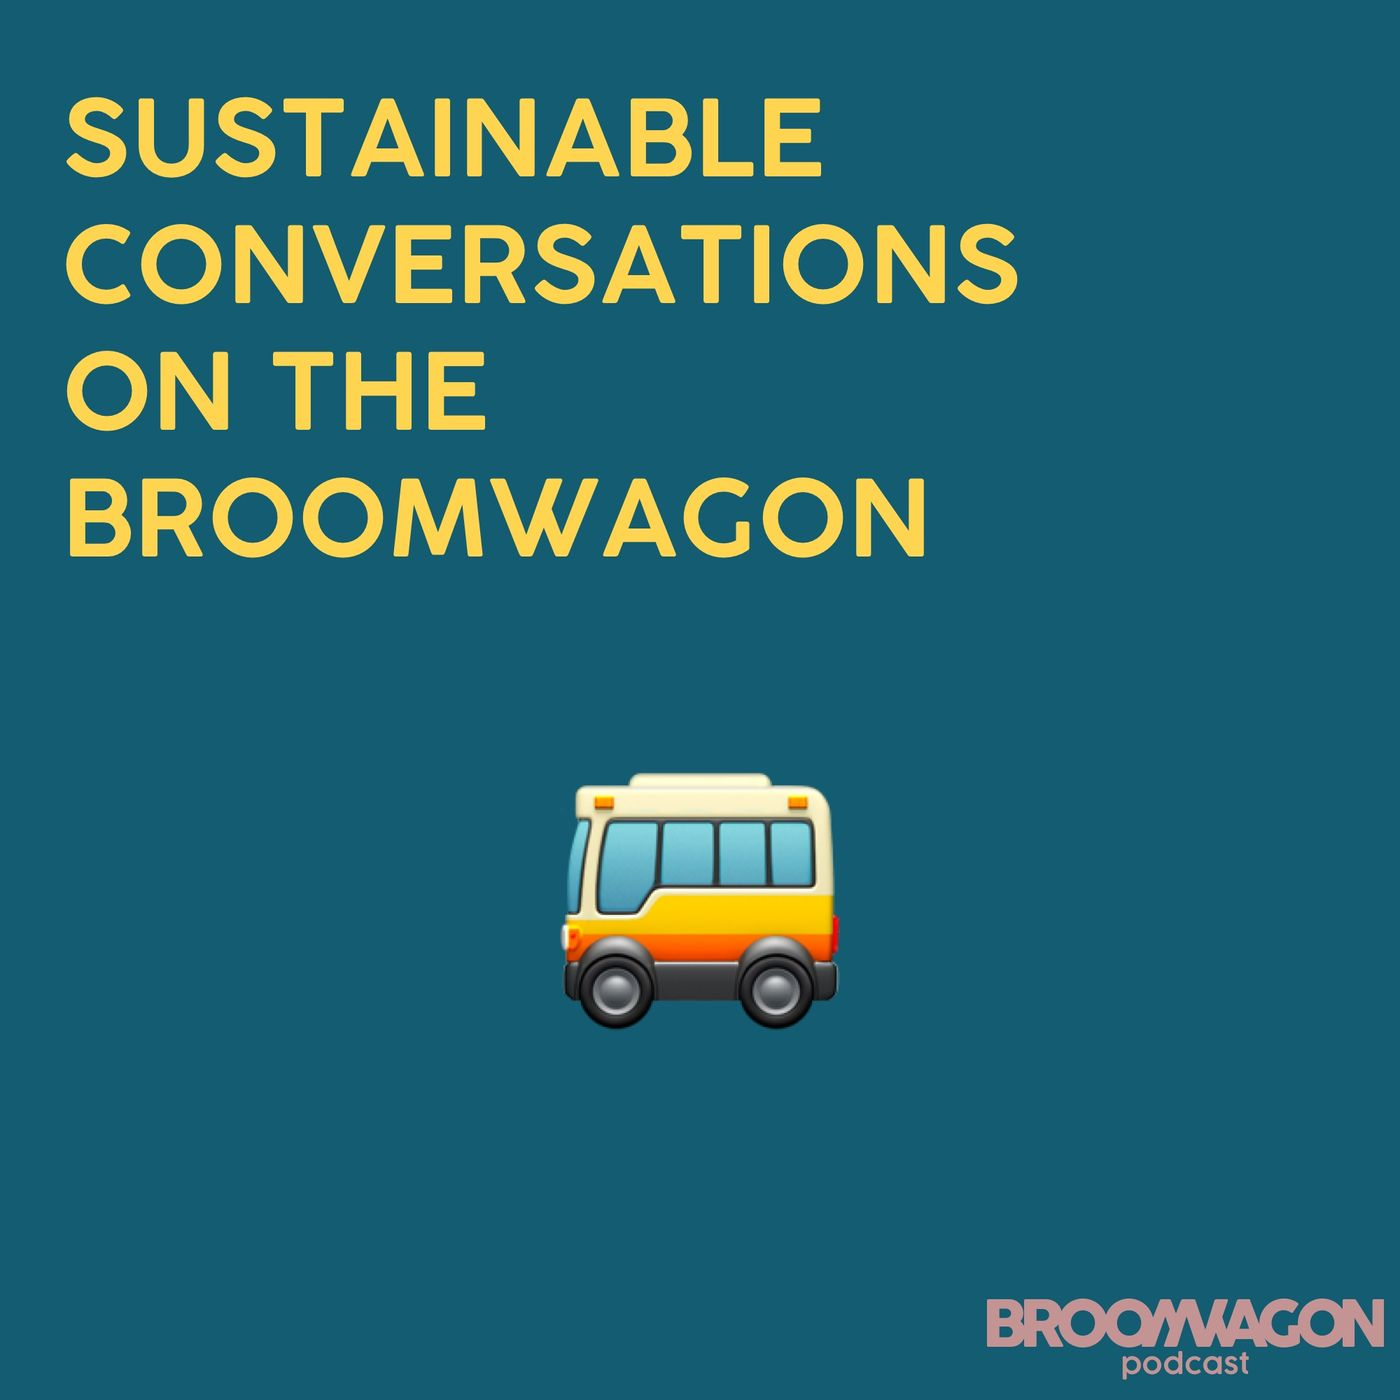 BroomWagon Podcast